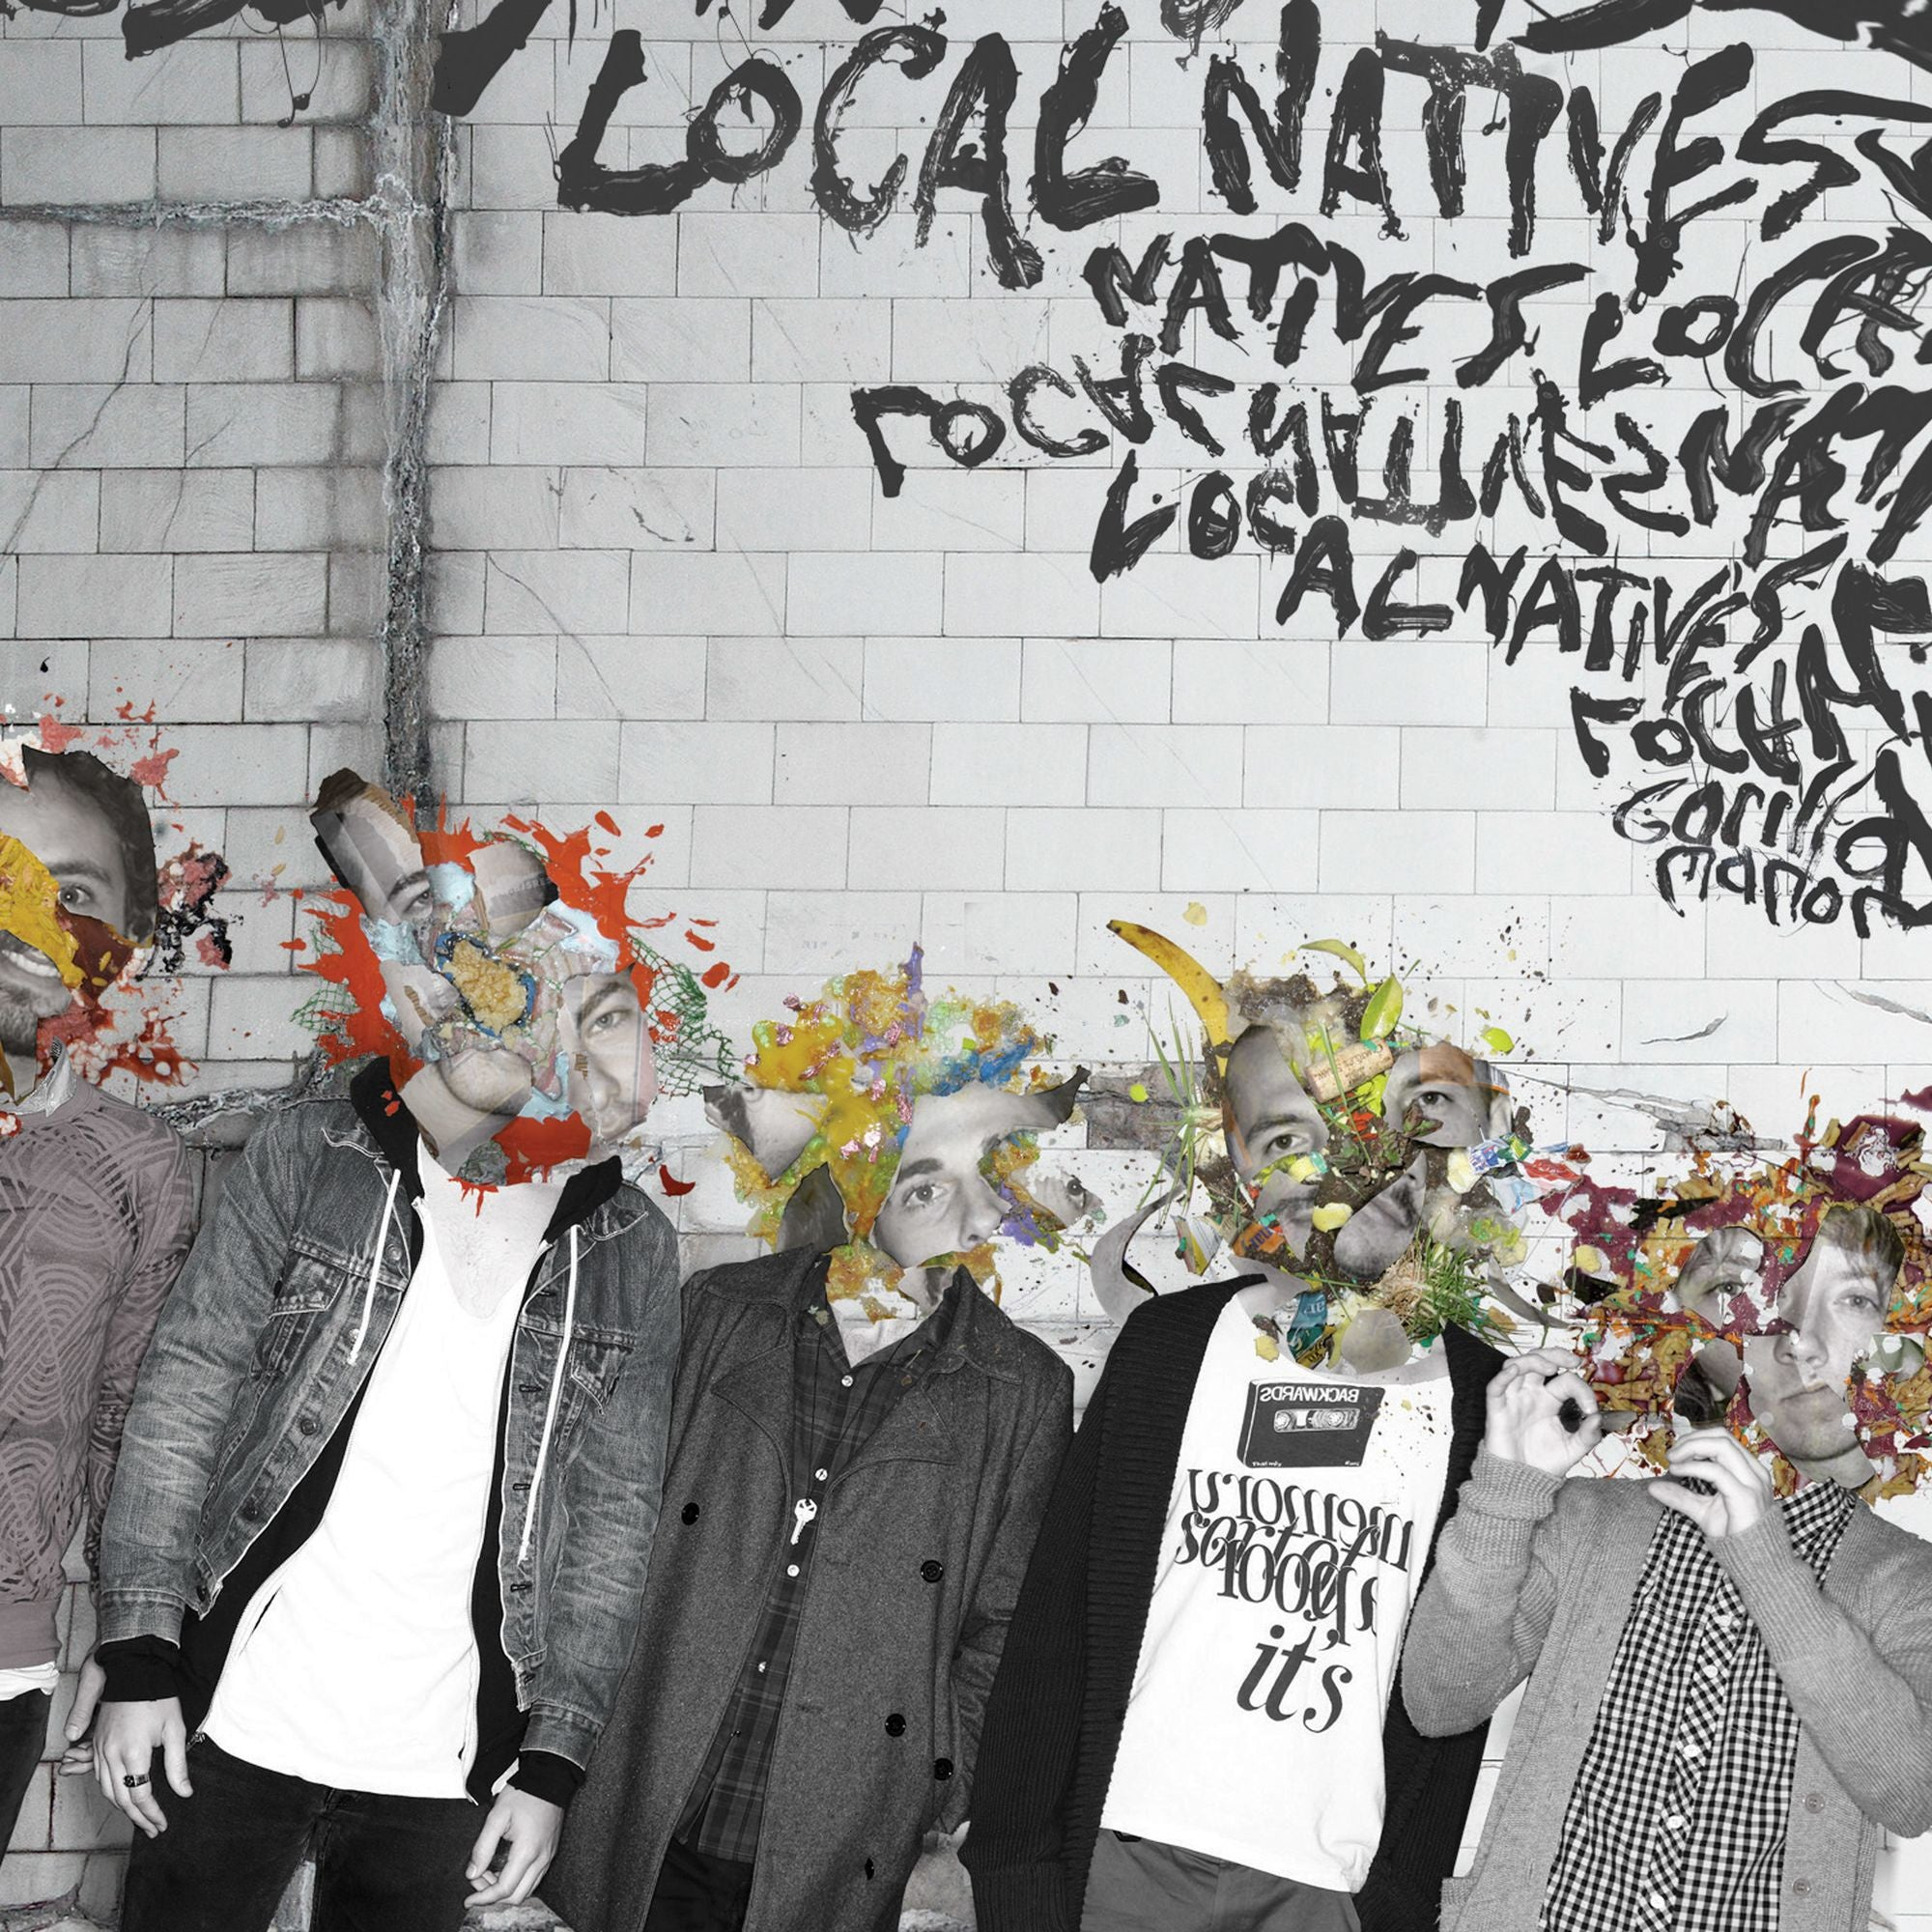 Local Natives ‎– Gorilla Manor - New Vinyl Lp 2018 Frenchkiss Limited Edition 'Ten Bands One Cause' Pressing on Pink Vinyl - Indie Rock